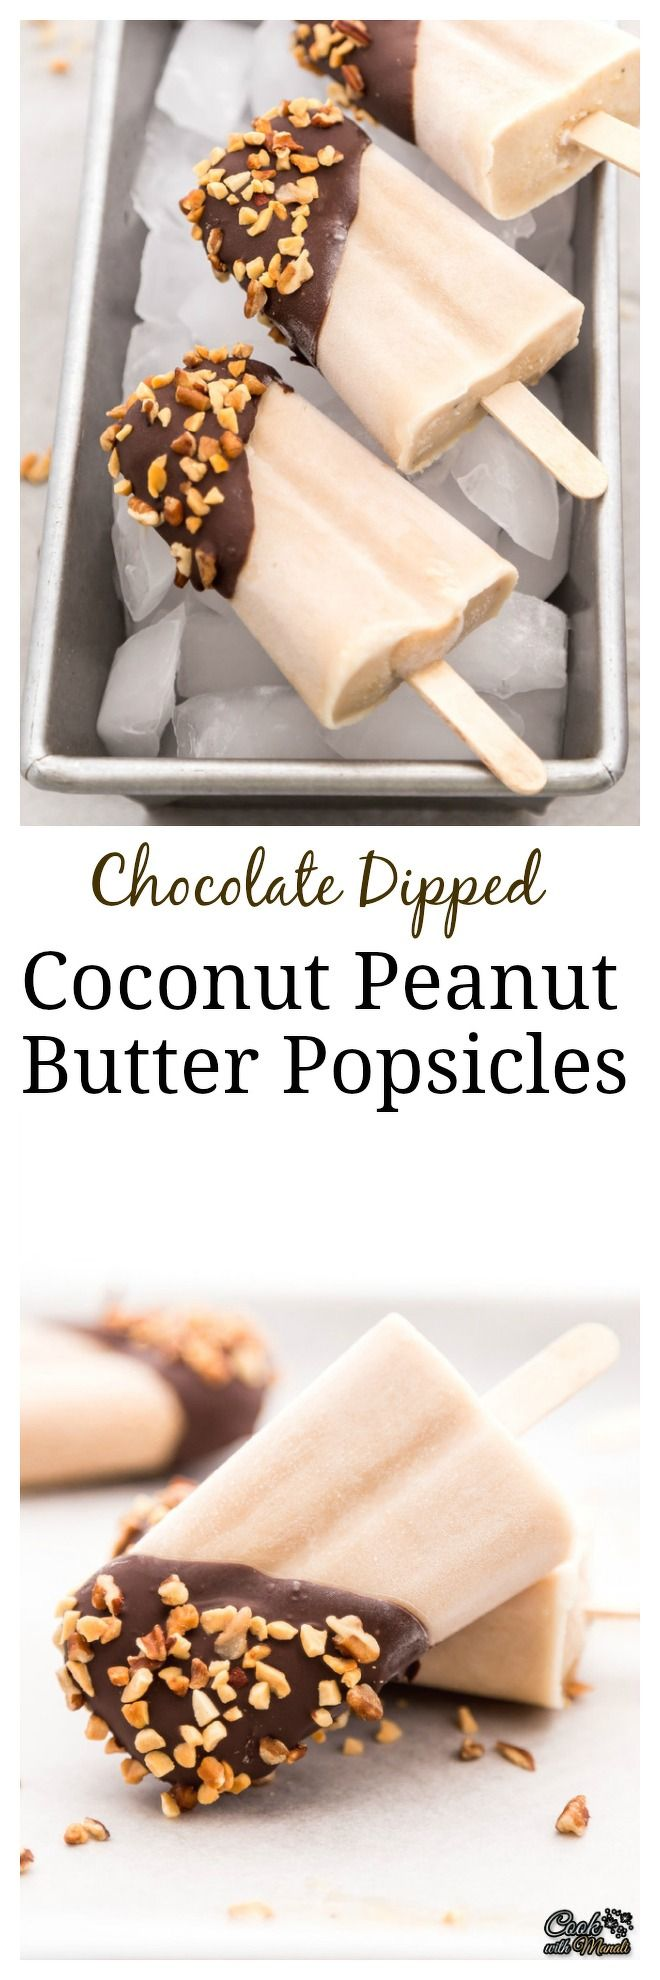 Chocolate Dipped Coconut Peanut Butter Popsicles | coconut recipes ...